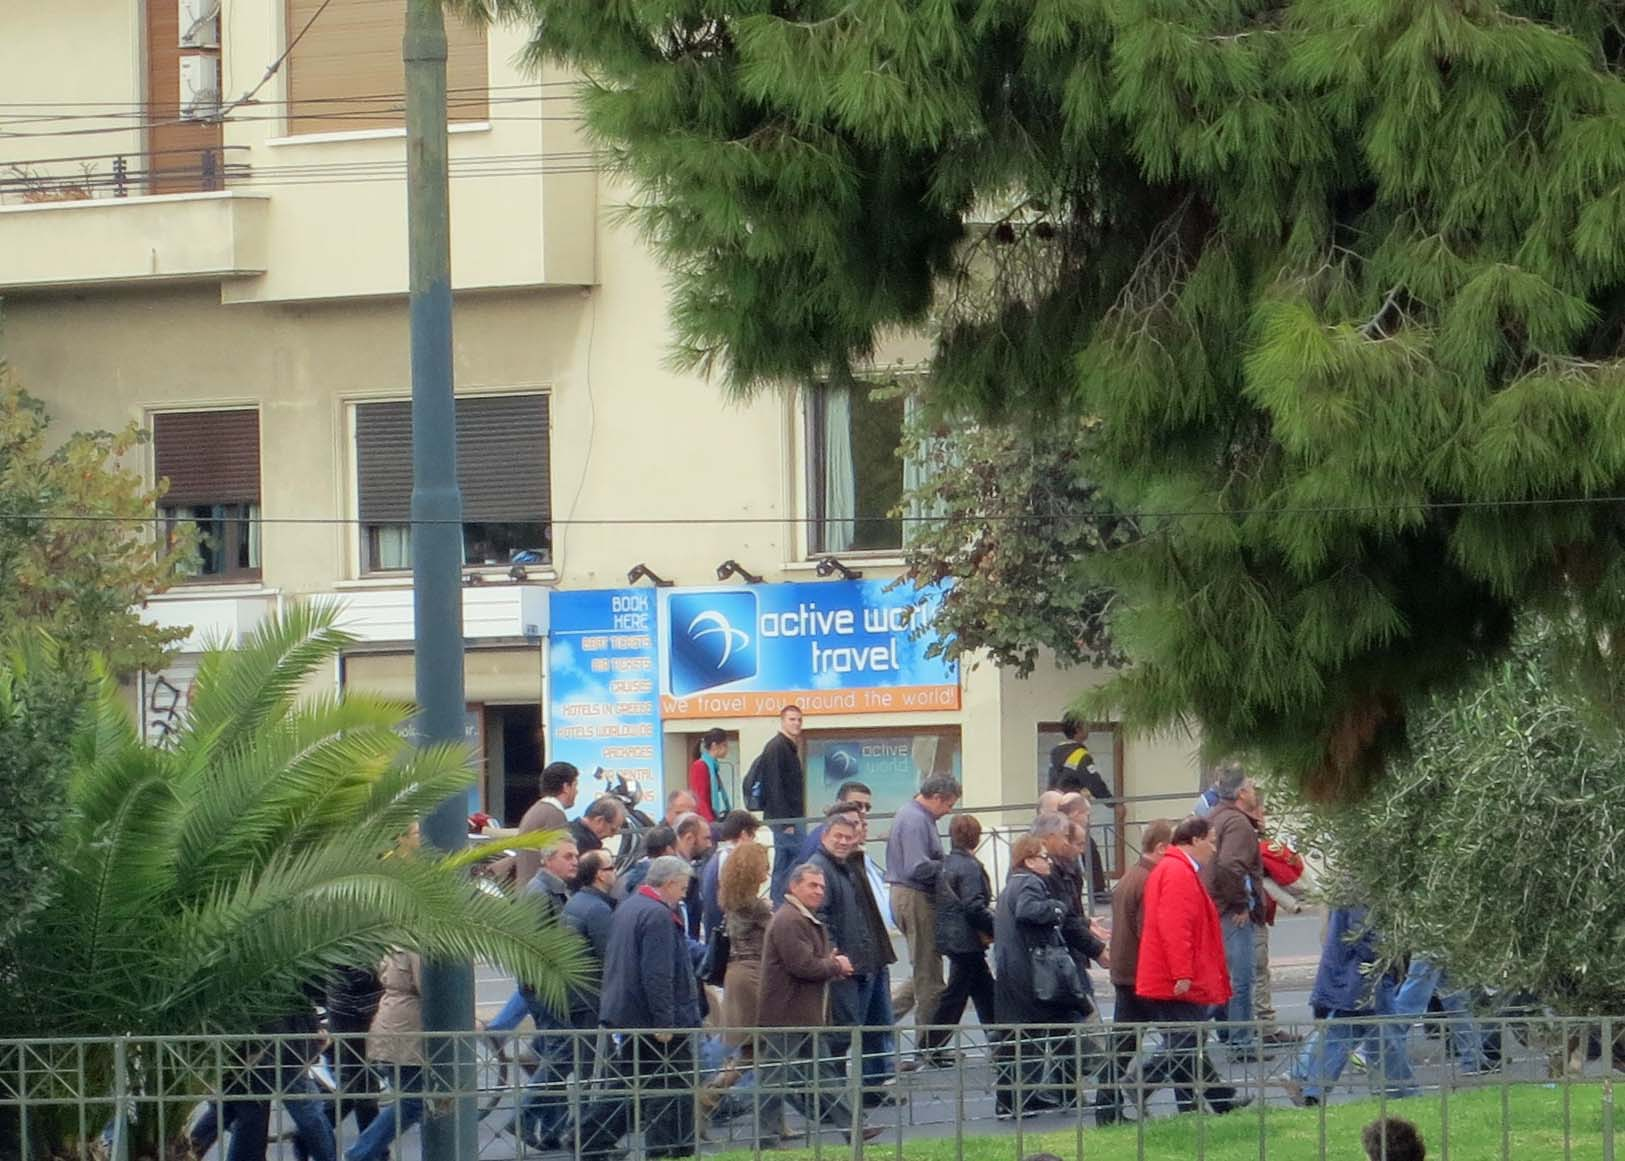 Standing near the Temple of Zeus, we watched as yet another group of protestors hit the streets of Athens.